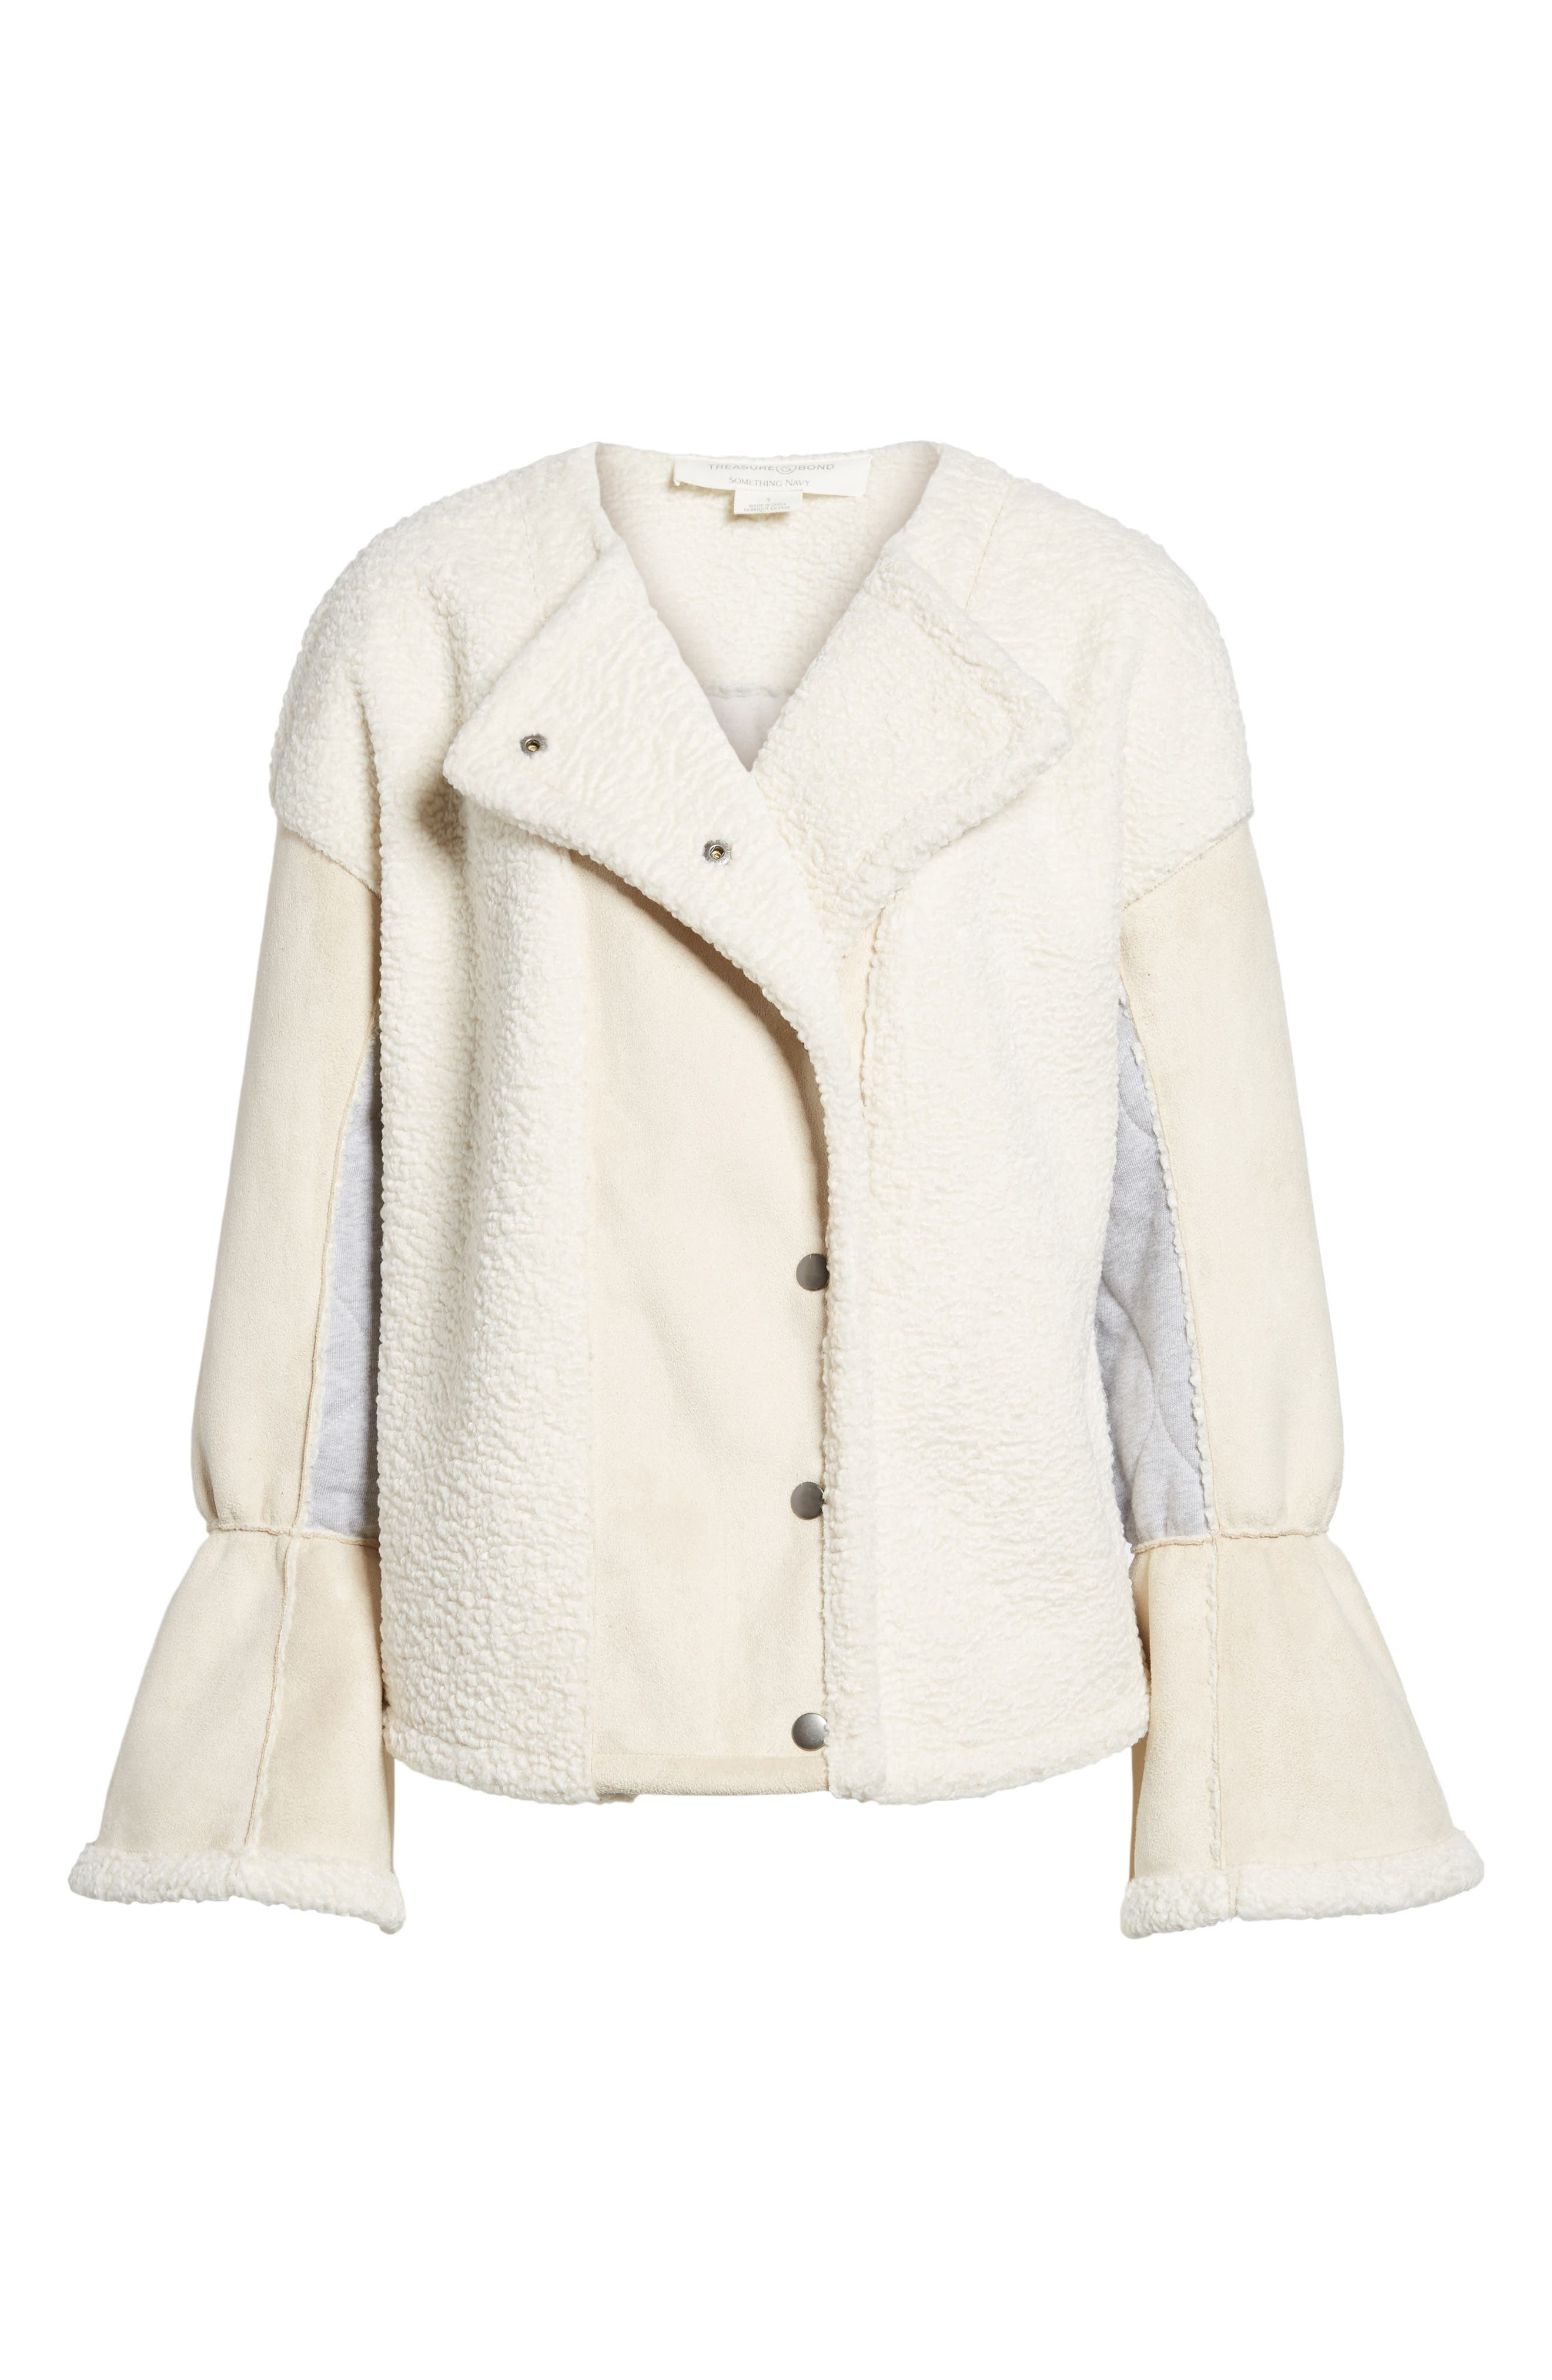 x Something Navy Bell Sleeve Faux Shearling Jacket,                             Alternate thumbnail 7, color,                             Ivory Combo